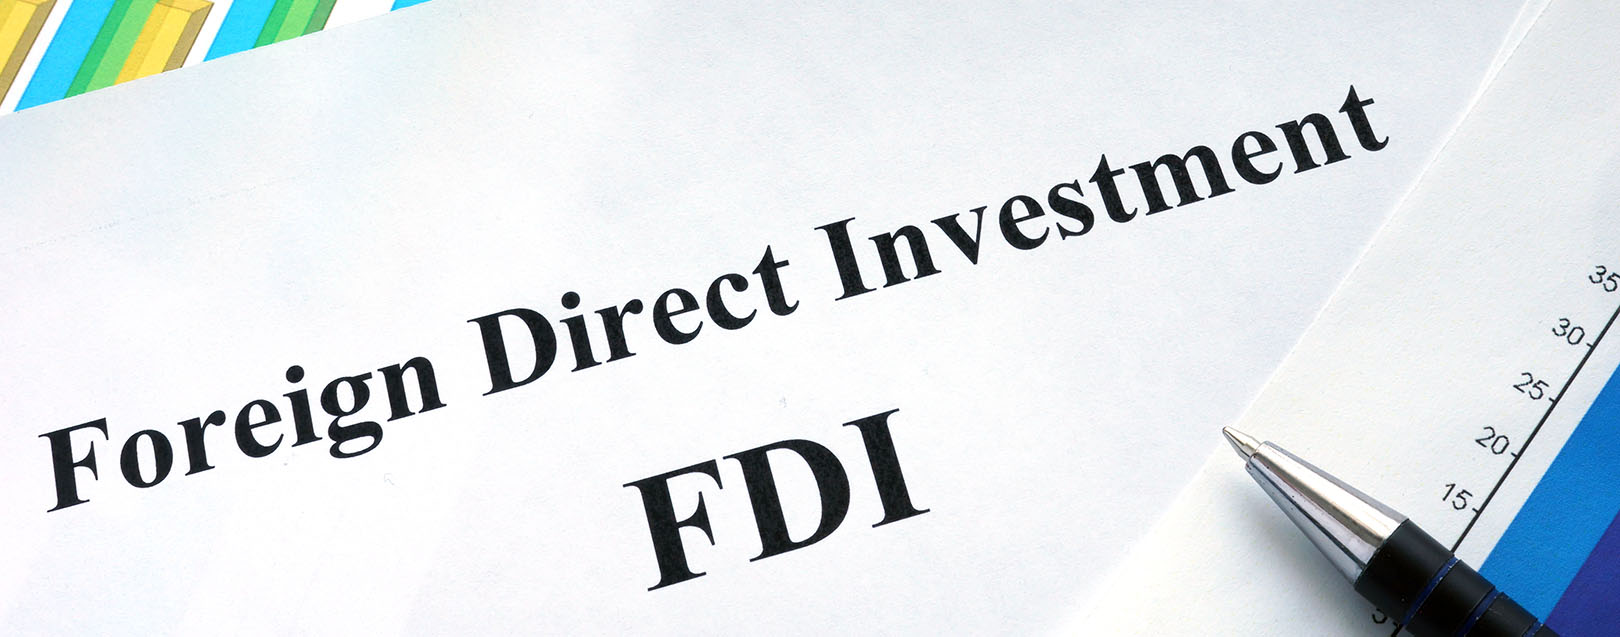 Govt notifies 100% FDI in other financial services